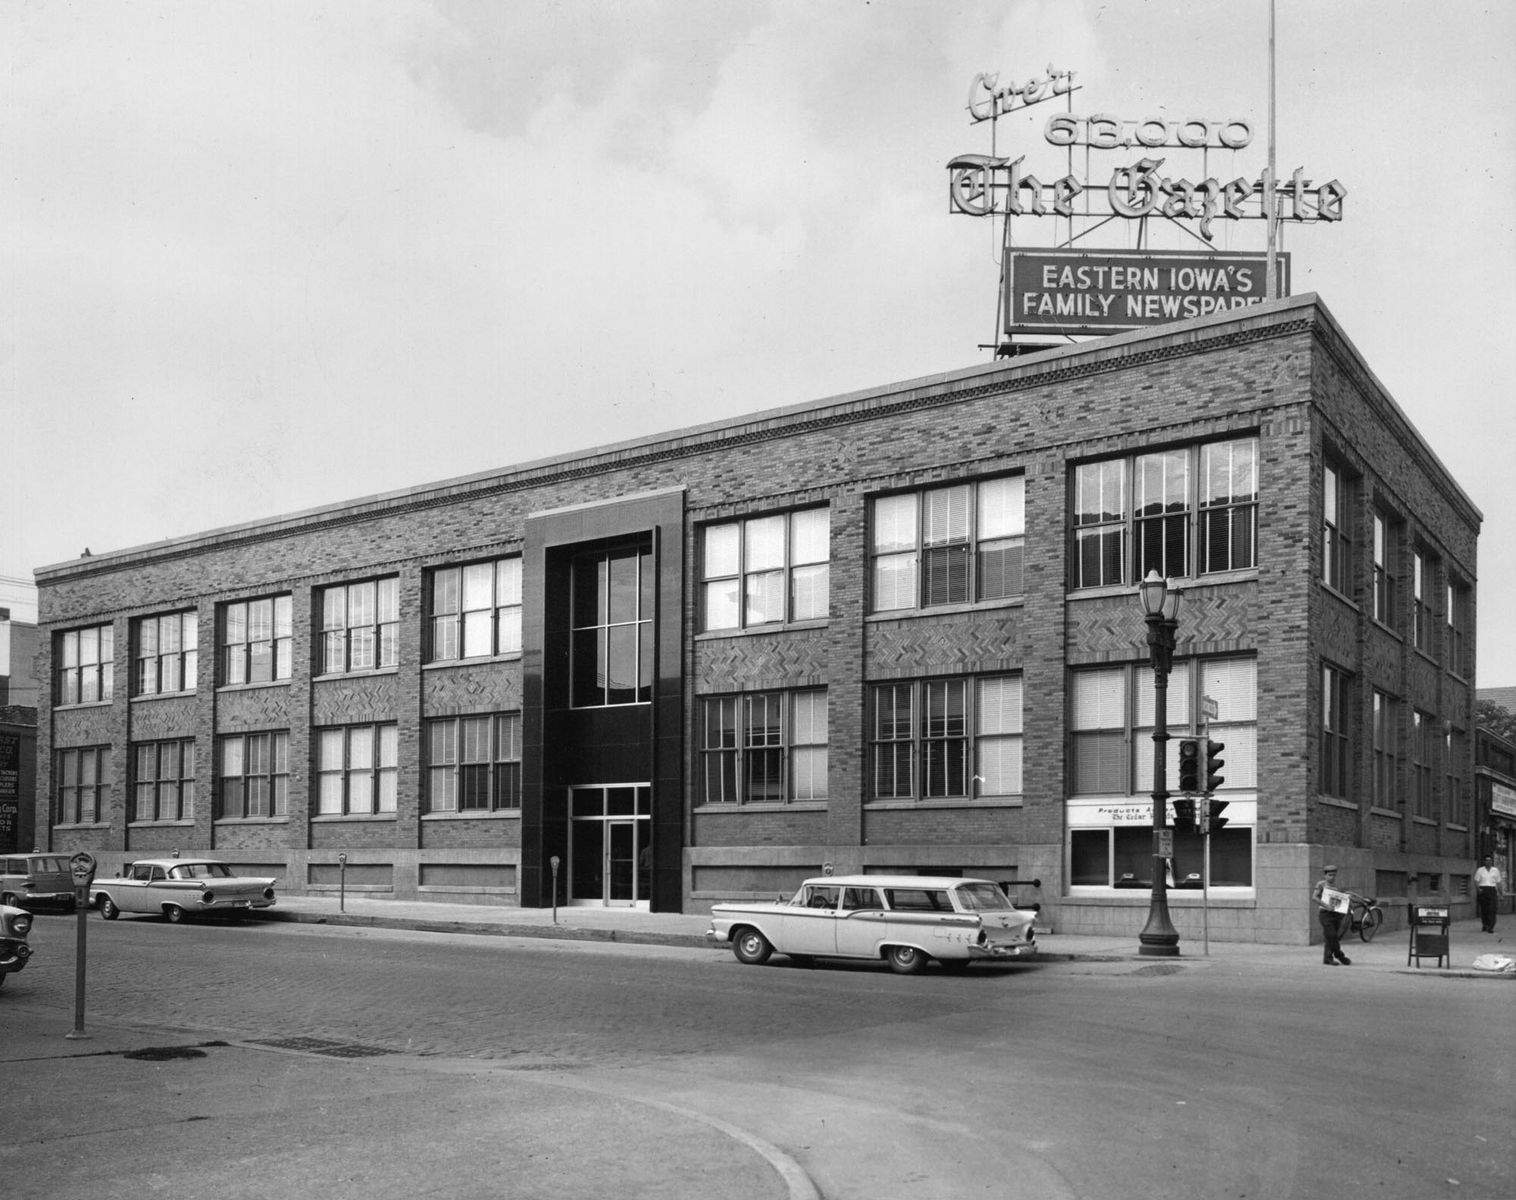 The Gazette has been locally owned for more than 130 years. Little caption information available in this July 1960 photo, showing The Gazette building, constructed in 1925, at 500 Third Avenue SE in Cedar Rapids.